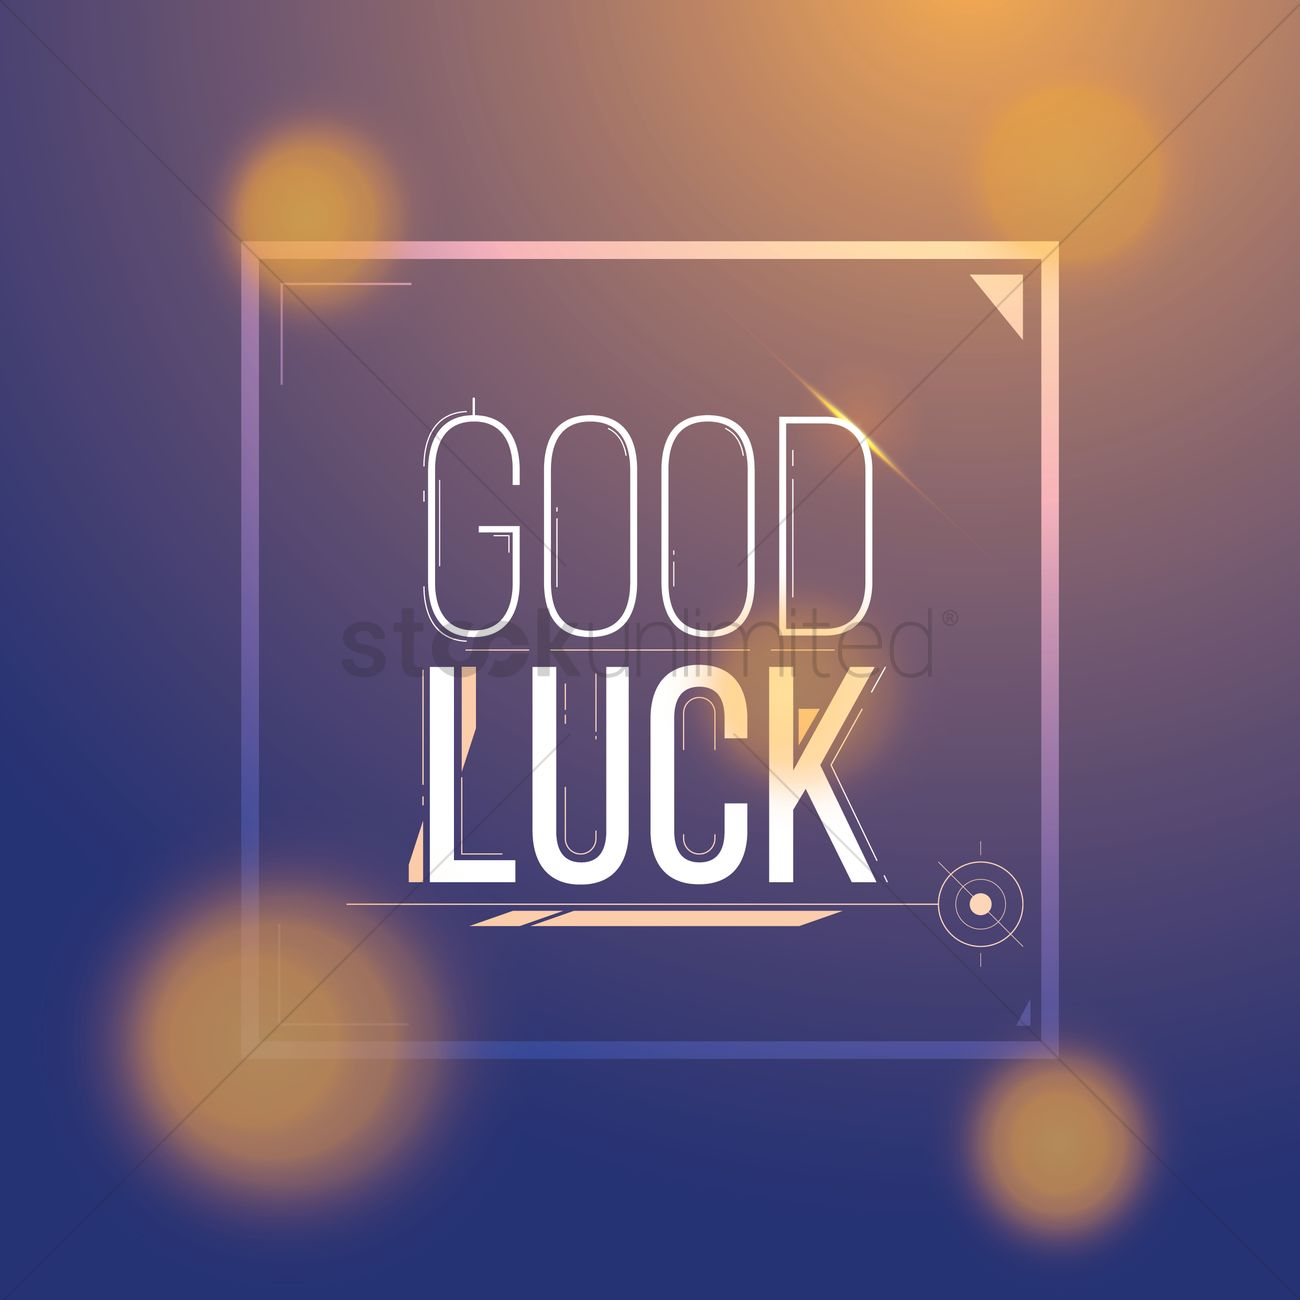 Good luck greeting vector image 1811318 stockunlimited good luck greeting vector graphic kristyandbryce Image collections